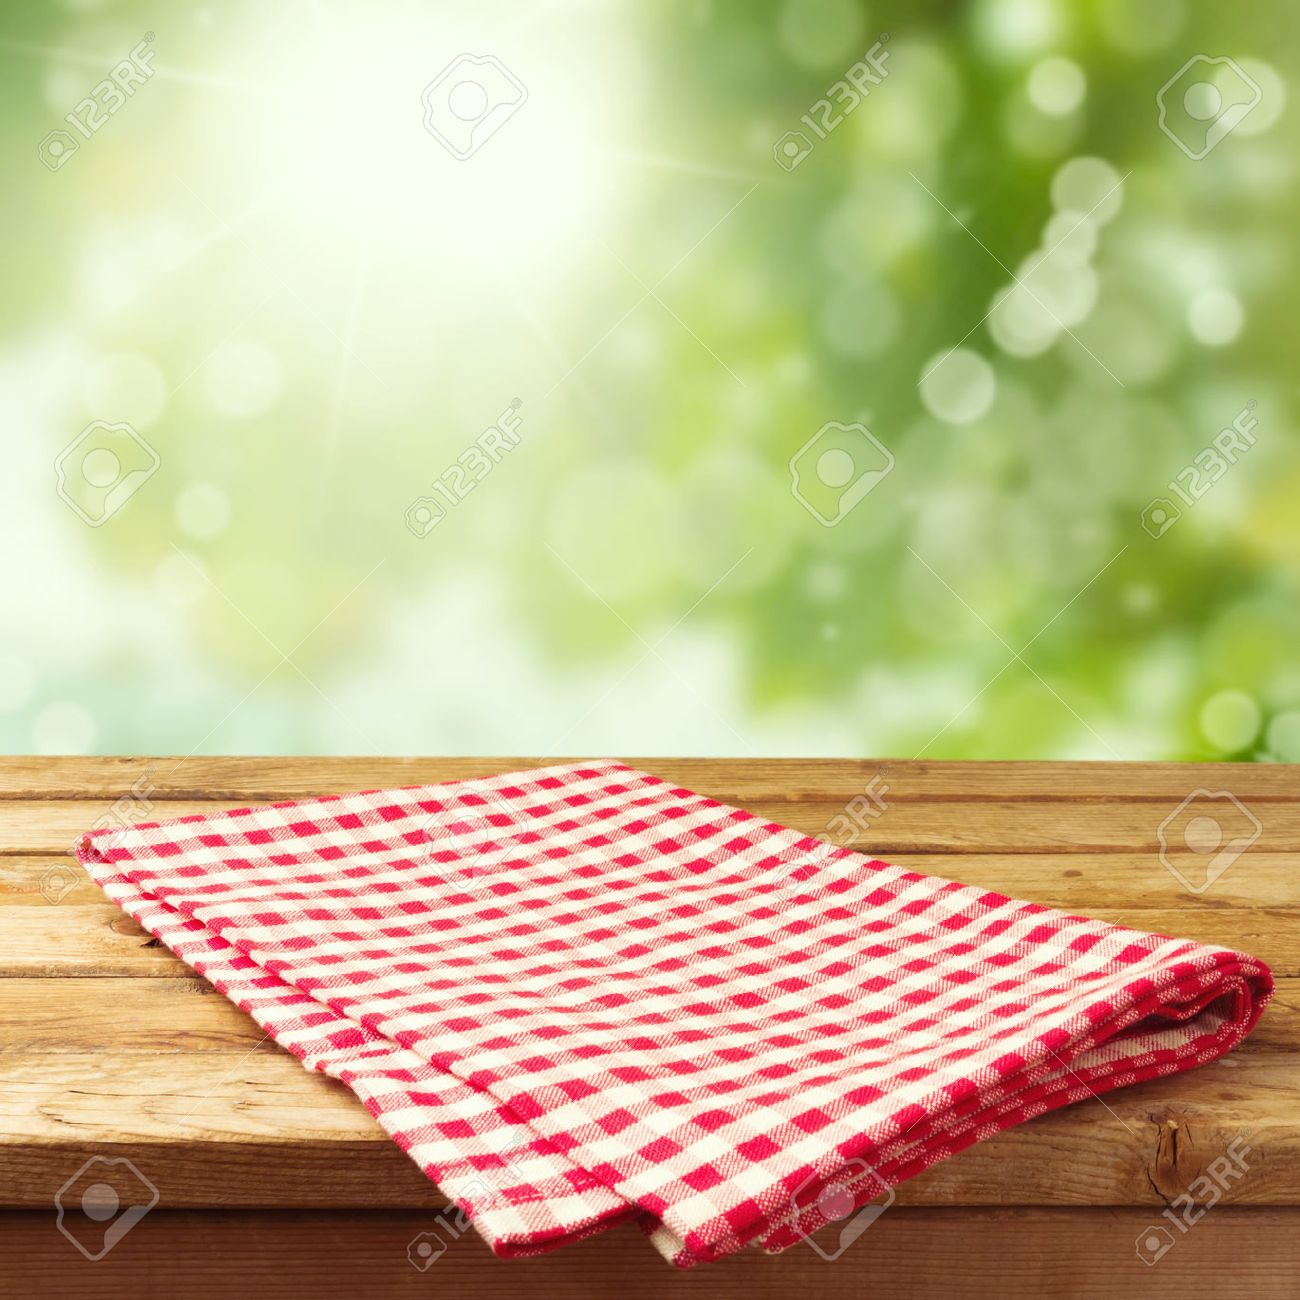 Picnic table background - Picnic Table At The Park Empty Wooden Deck Table With Tablecloth Over Bokeh Background